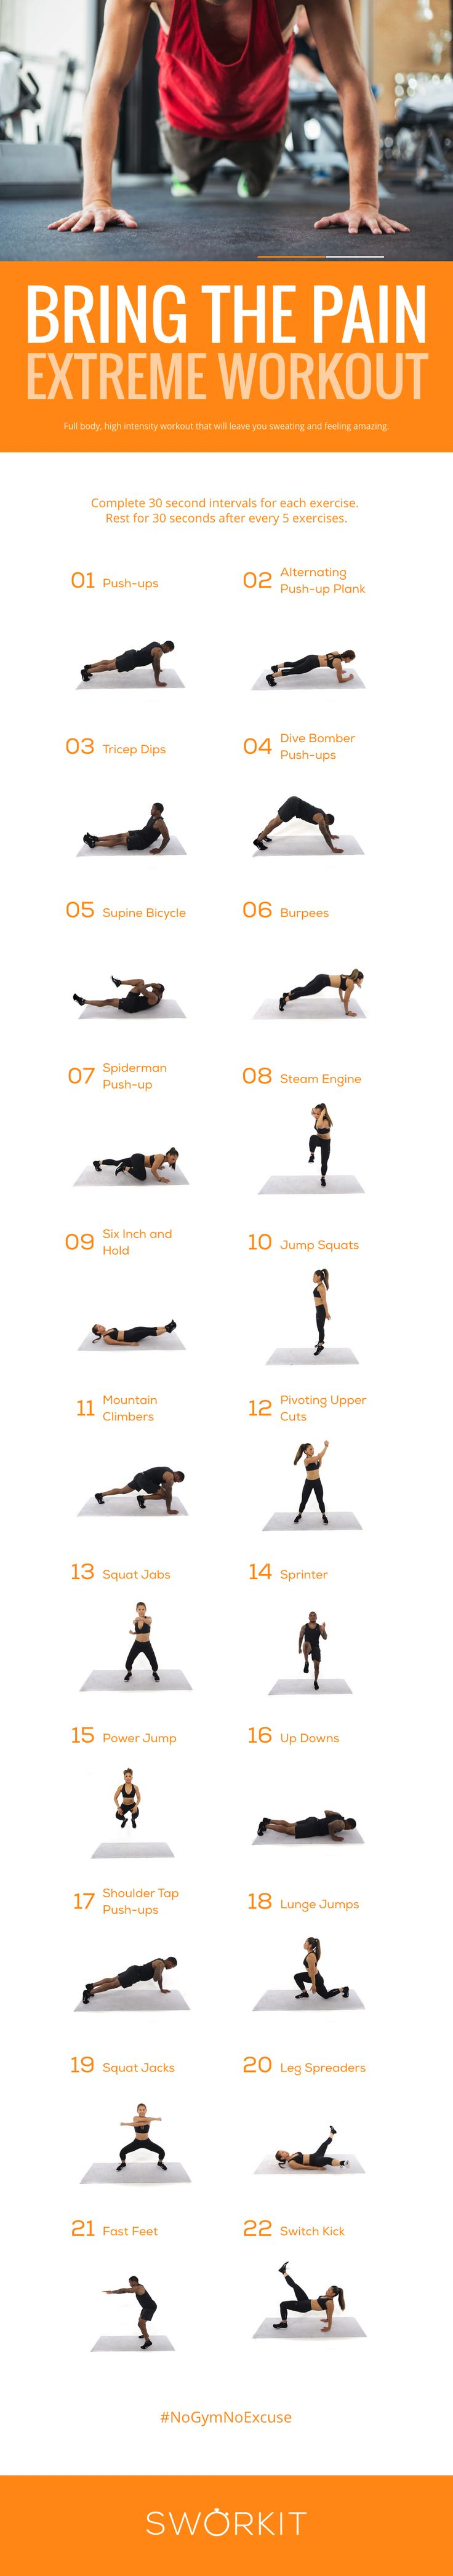 Bring on the Pain with this extreme custom workout for Sworkit for iOS and Android. If you have the Sworkit app, you can import this workout directly into the app: http://m.sworkit.com/share?w=ZkT5-0JkGg